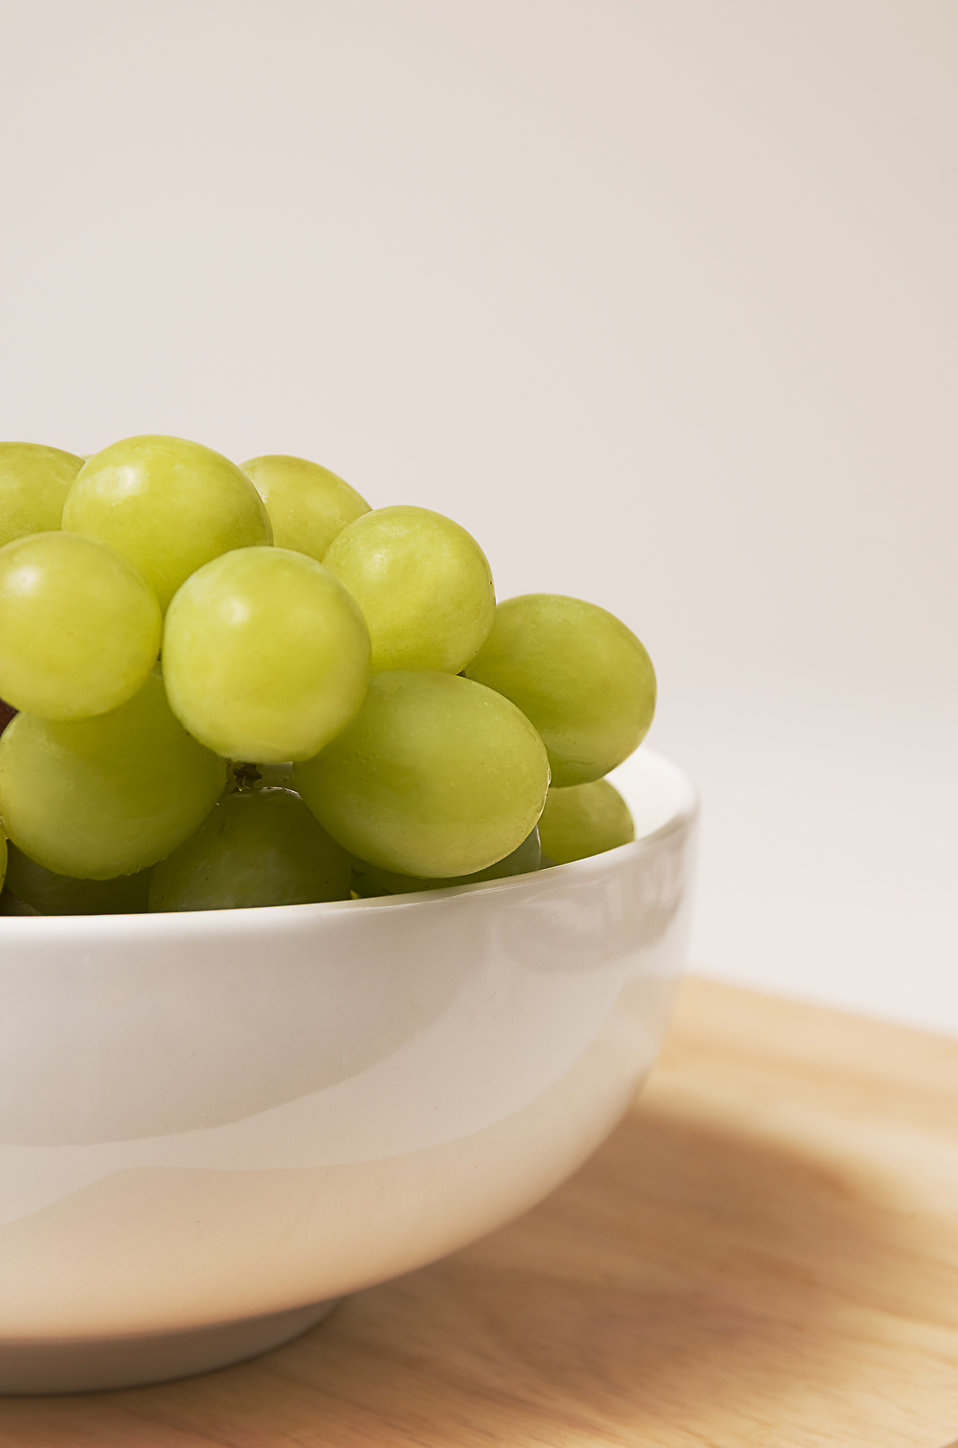 A bowl filled with green grapes : Free Stock Photo